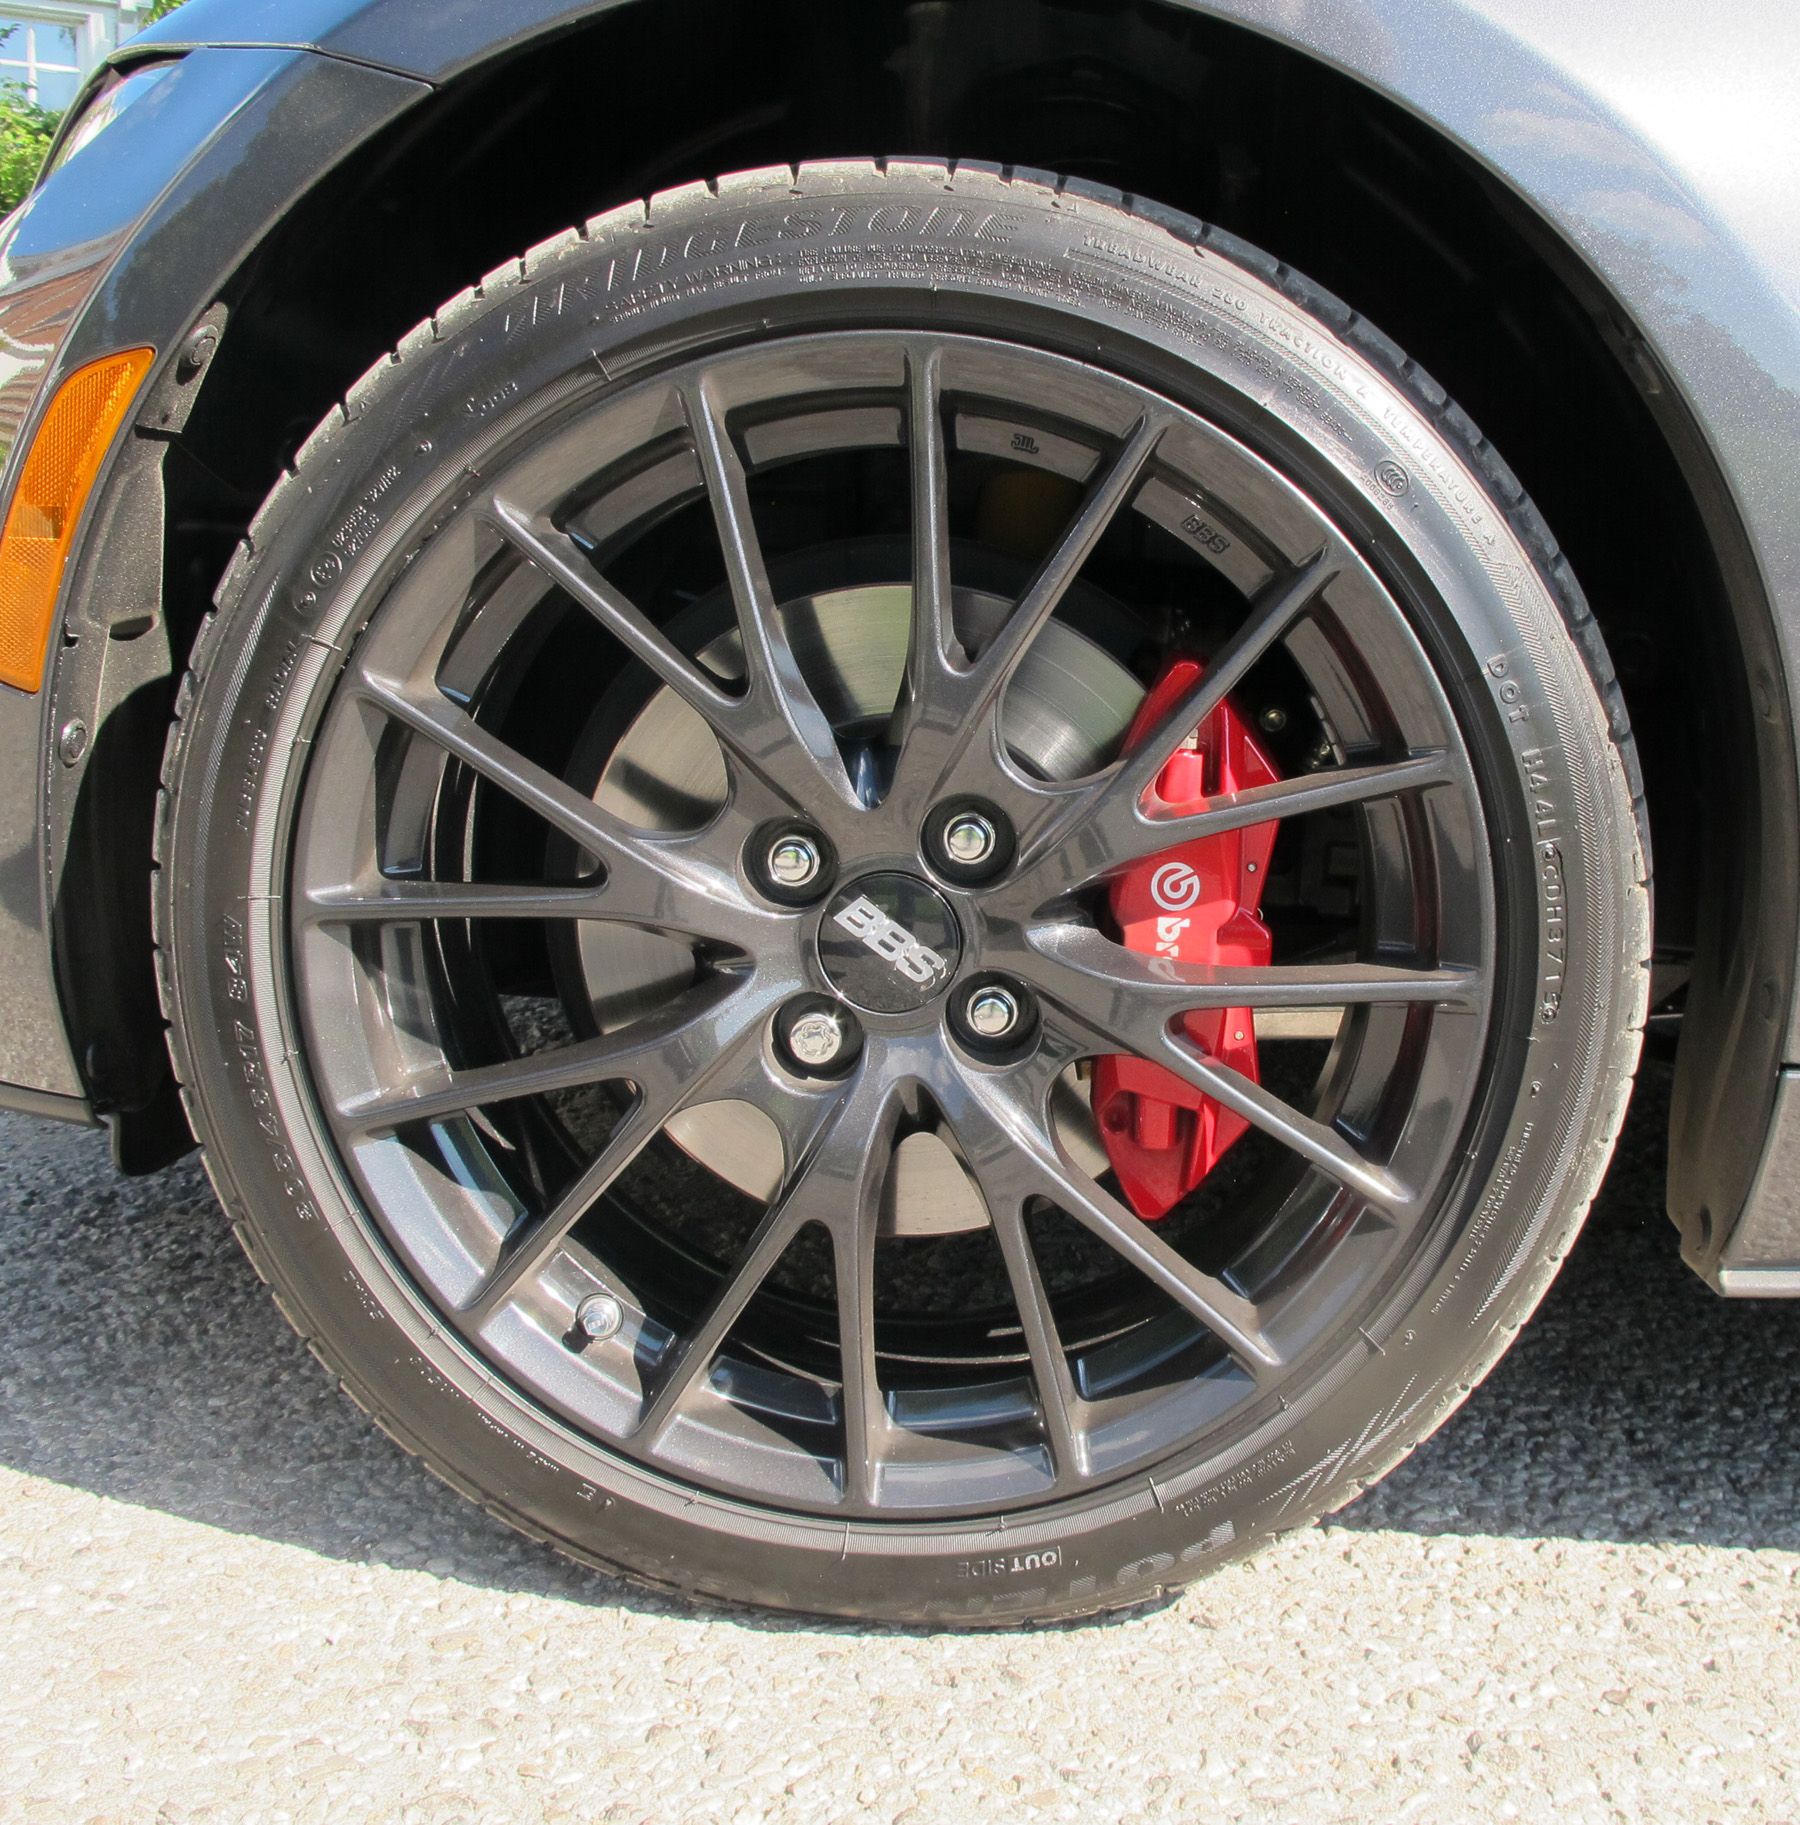 The GS model with Sport Package includes 17-inch BBS forged alloy wheels (dark finish), dark finish Brembo front brakes and red painted front and rear brake calipers.